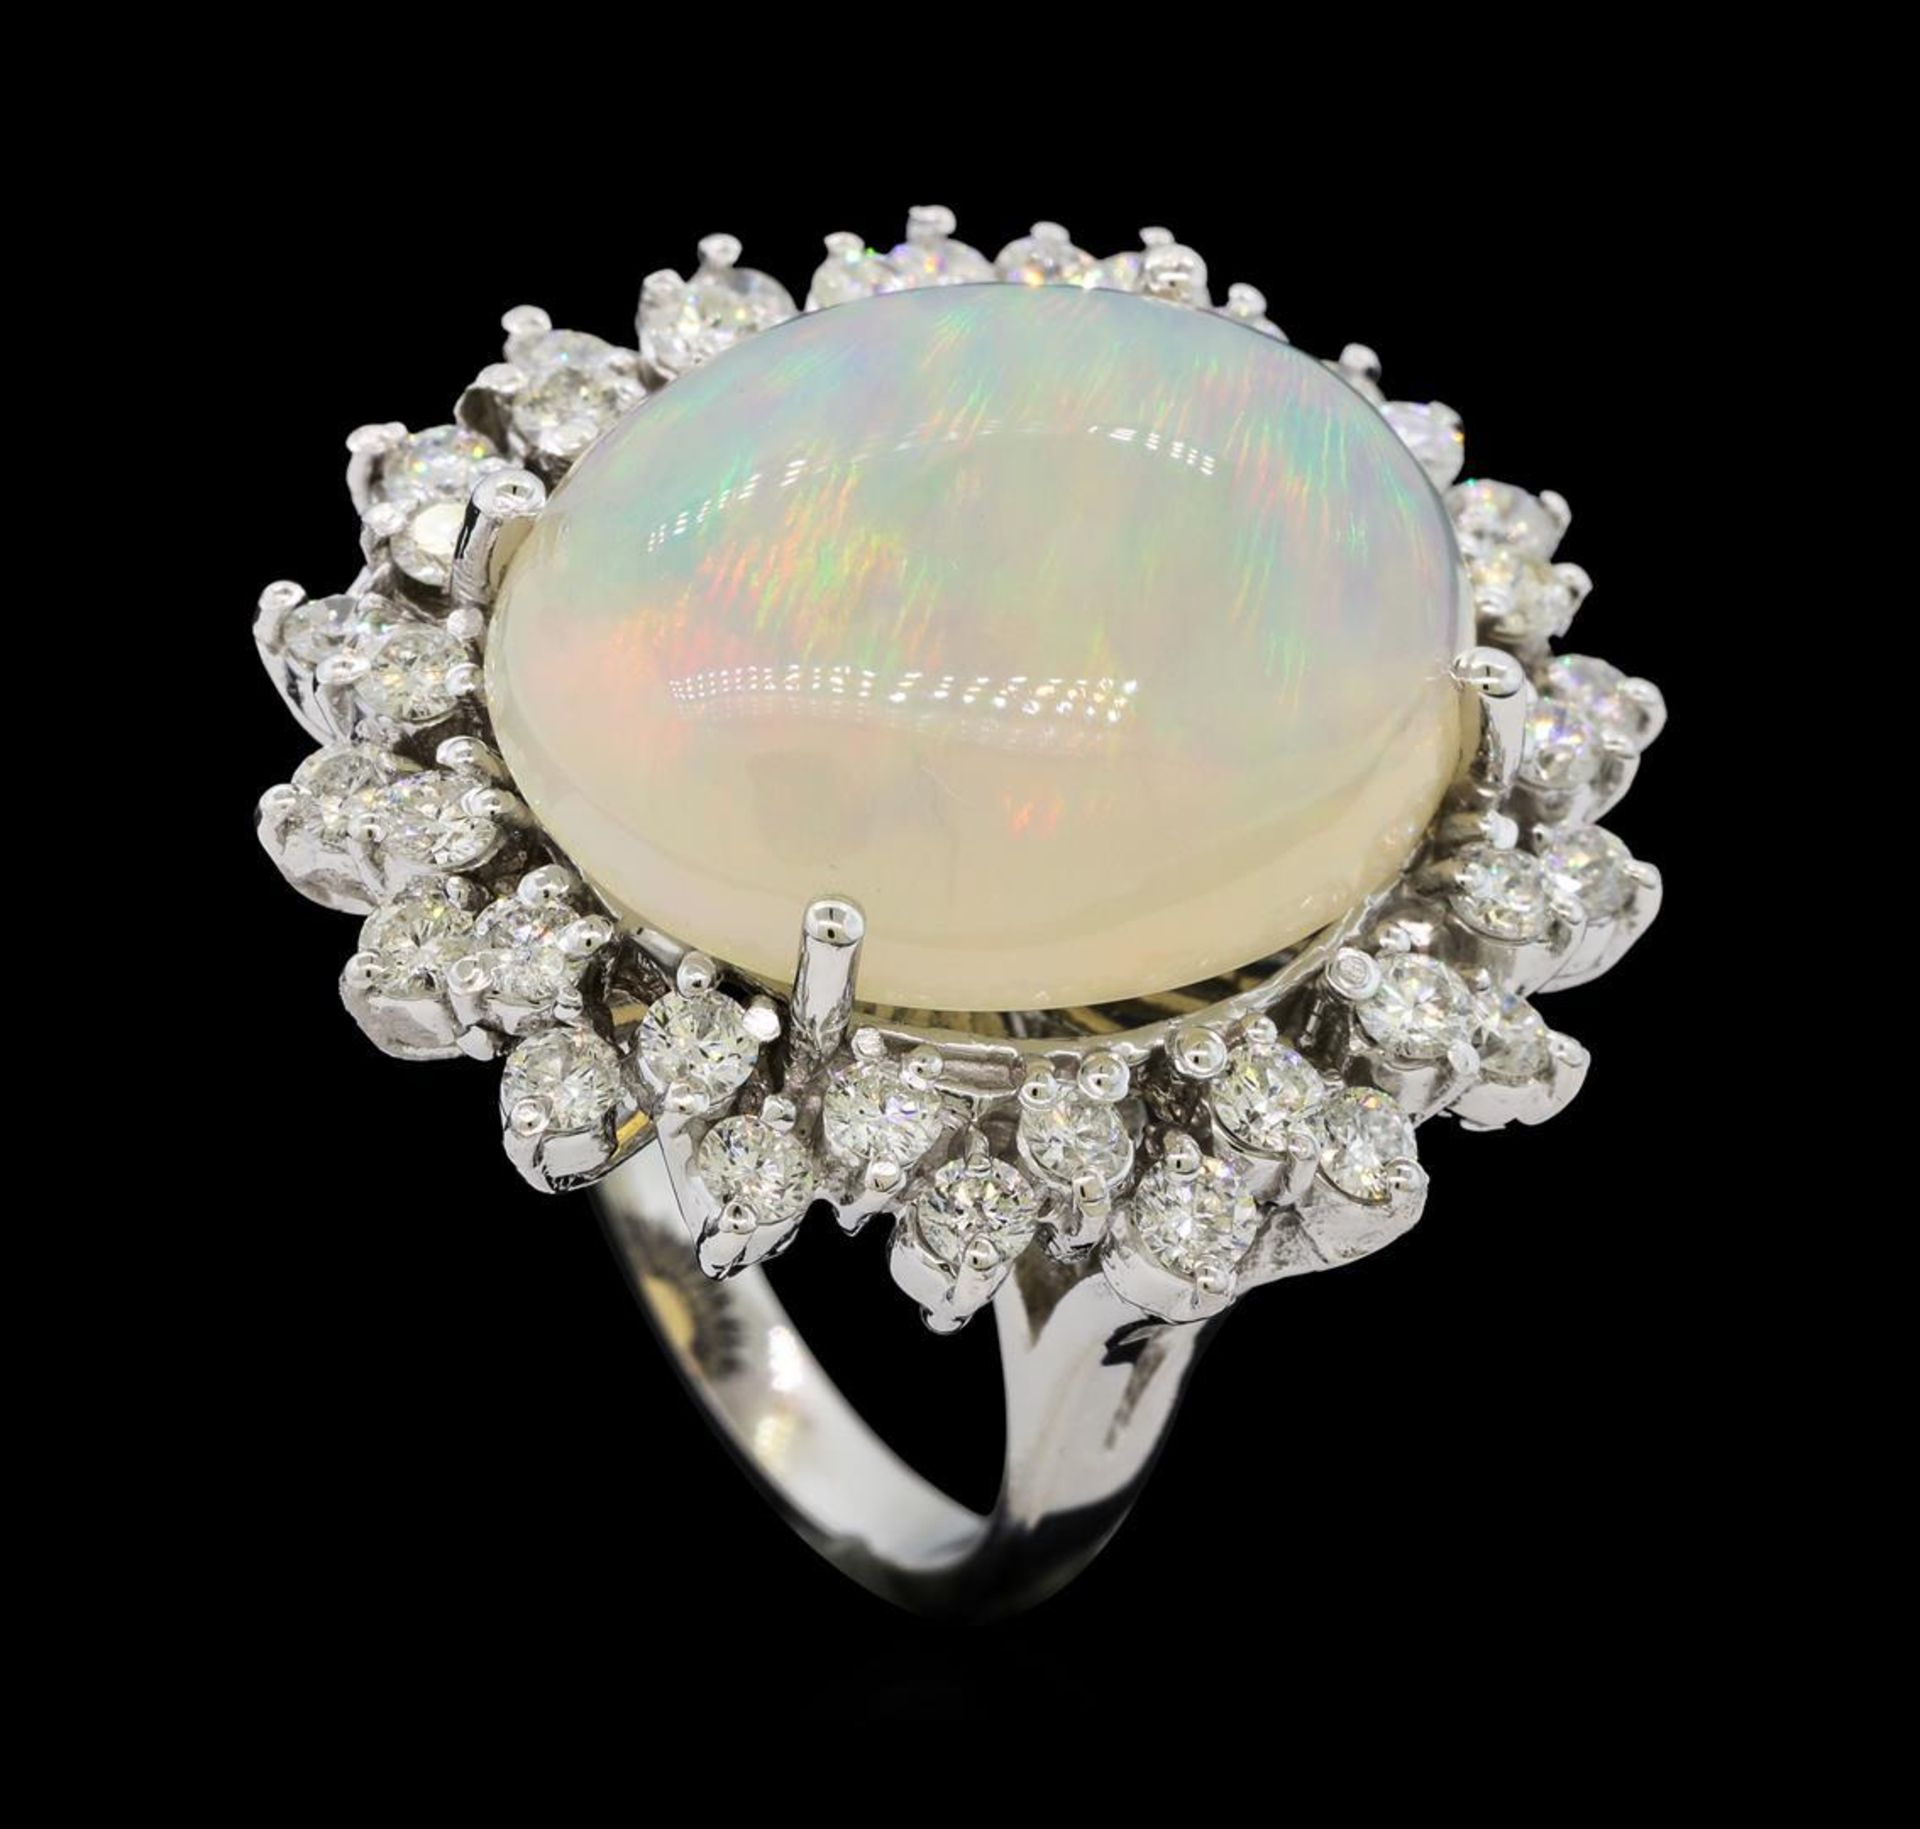 12.57 ctw Opal and Diamond Ring - 14KT White Gold - Image 4 of 5